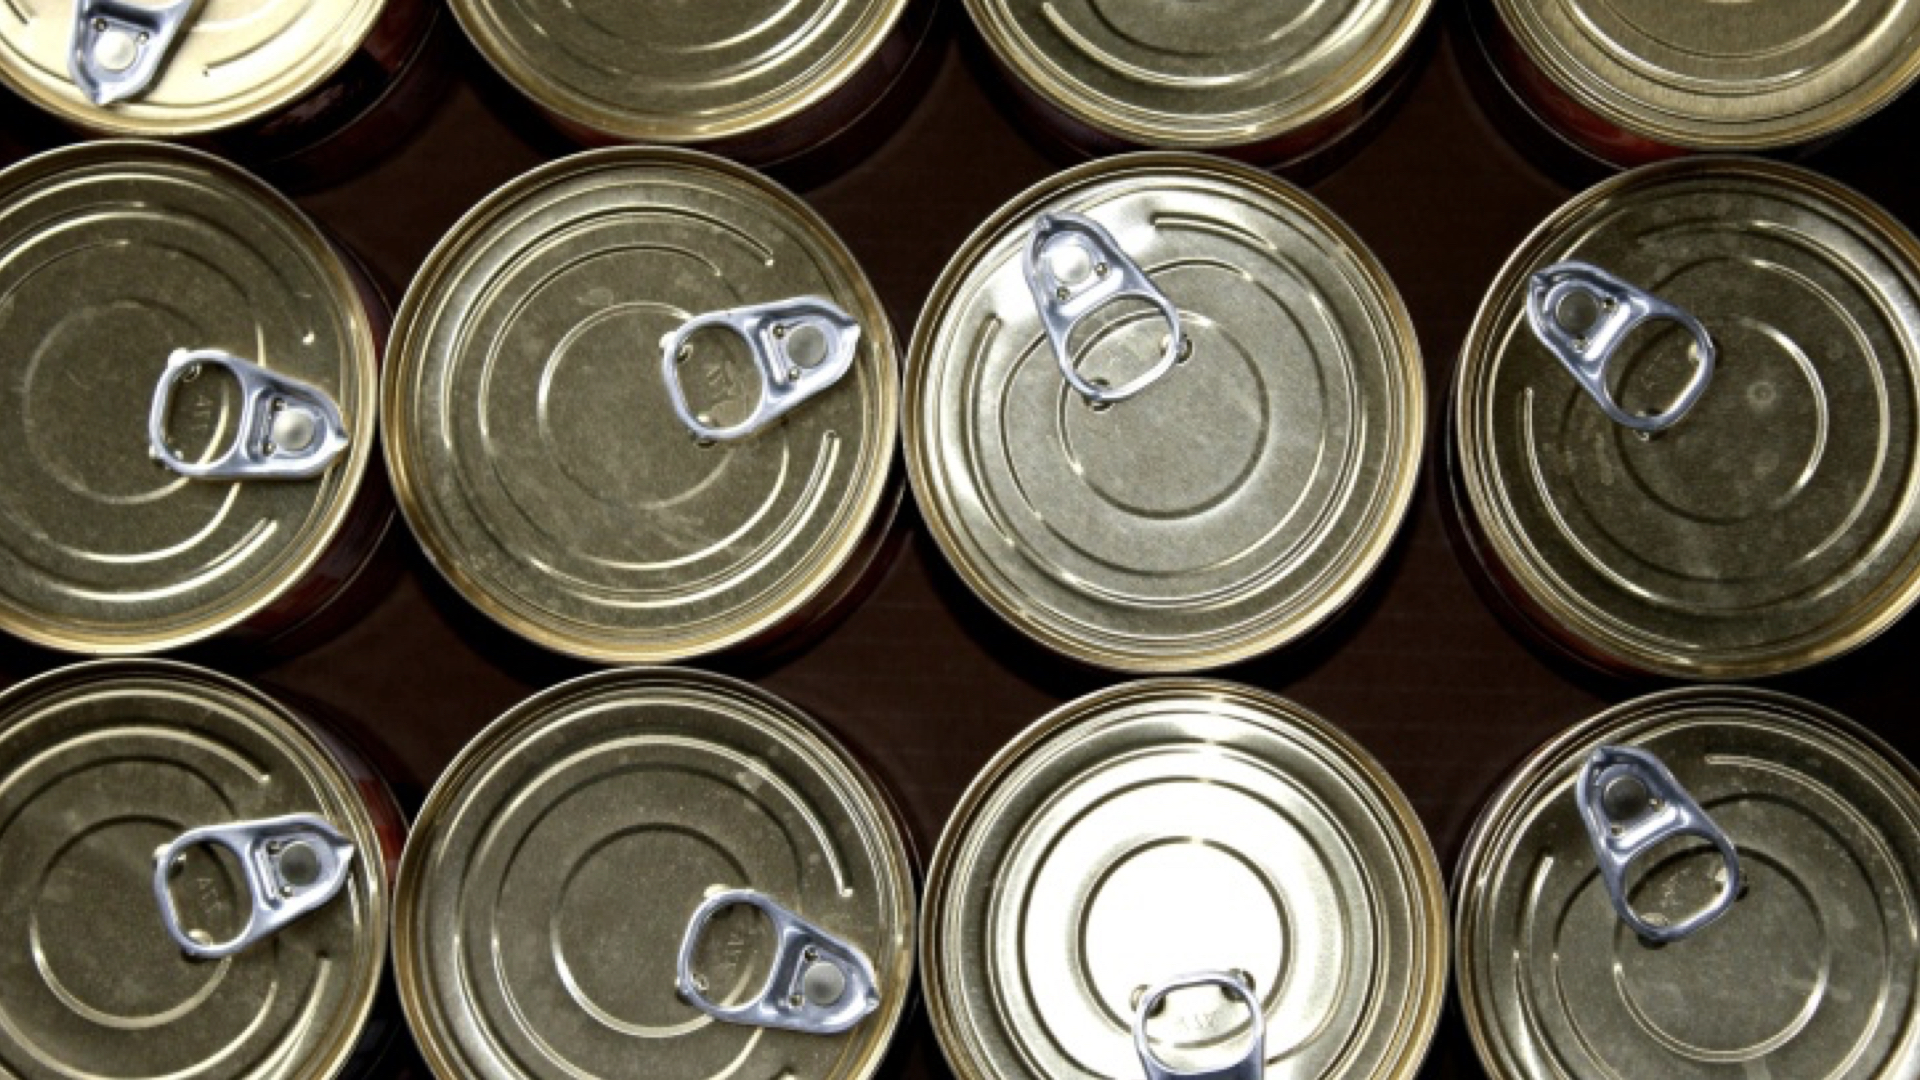 How to Avoid the Obesity-Related Plastic Chemical BPA